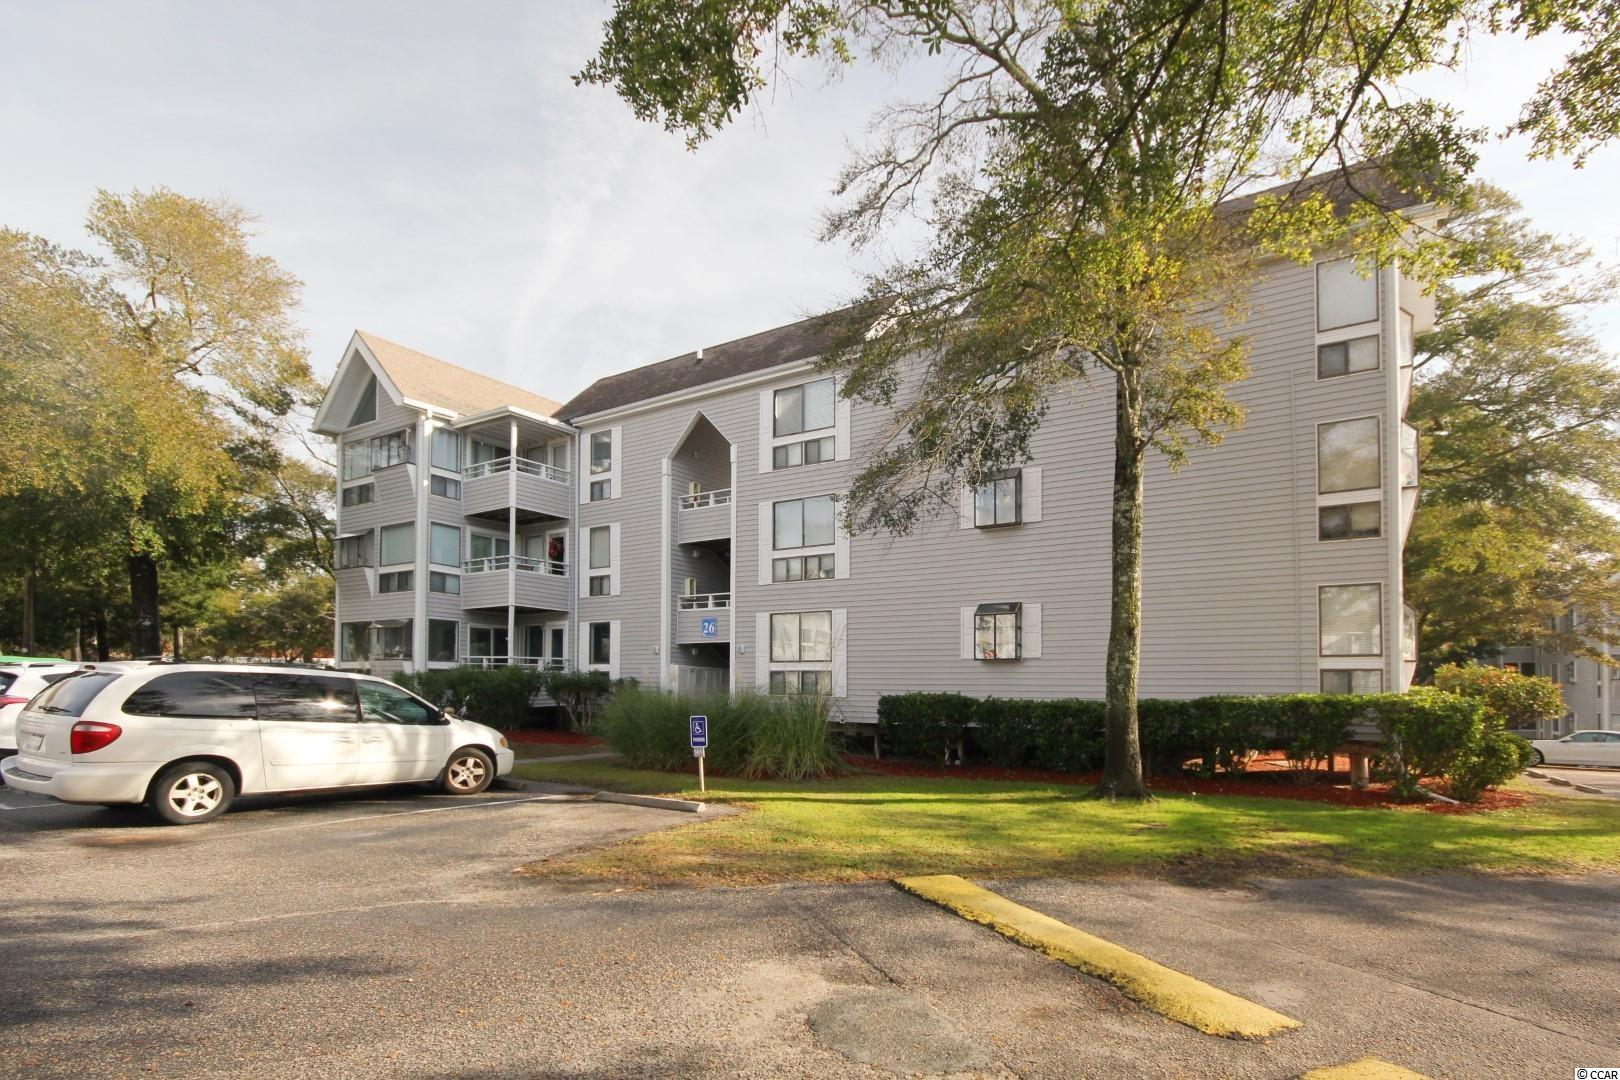 Nicely furnished 2/2 ground floor condo located on the back side of the community. Arcadian Dunes is located 2/3 blocks from the beach and has some great amenities. 2 Pools, Sauna & Steam, workout room, playground, Arcade and Harry the Hats sports bar on site. We are 3 blocks to the Apache Pier, 4 to 5 min to Super Walmart, Krogers and Tanger Outlet Mall.